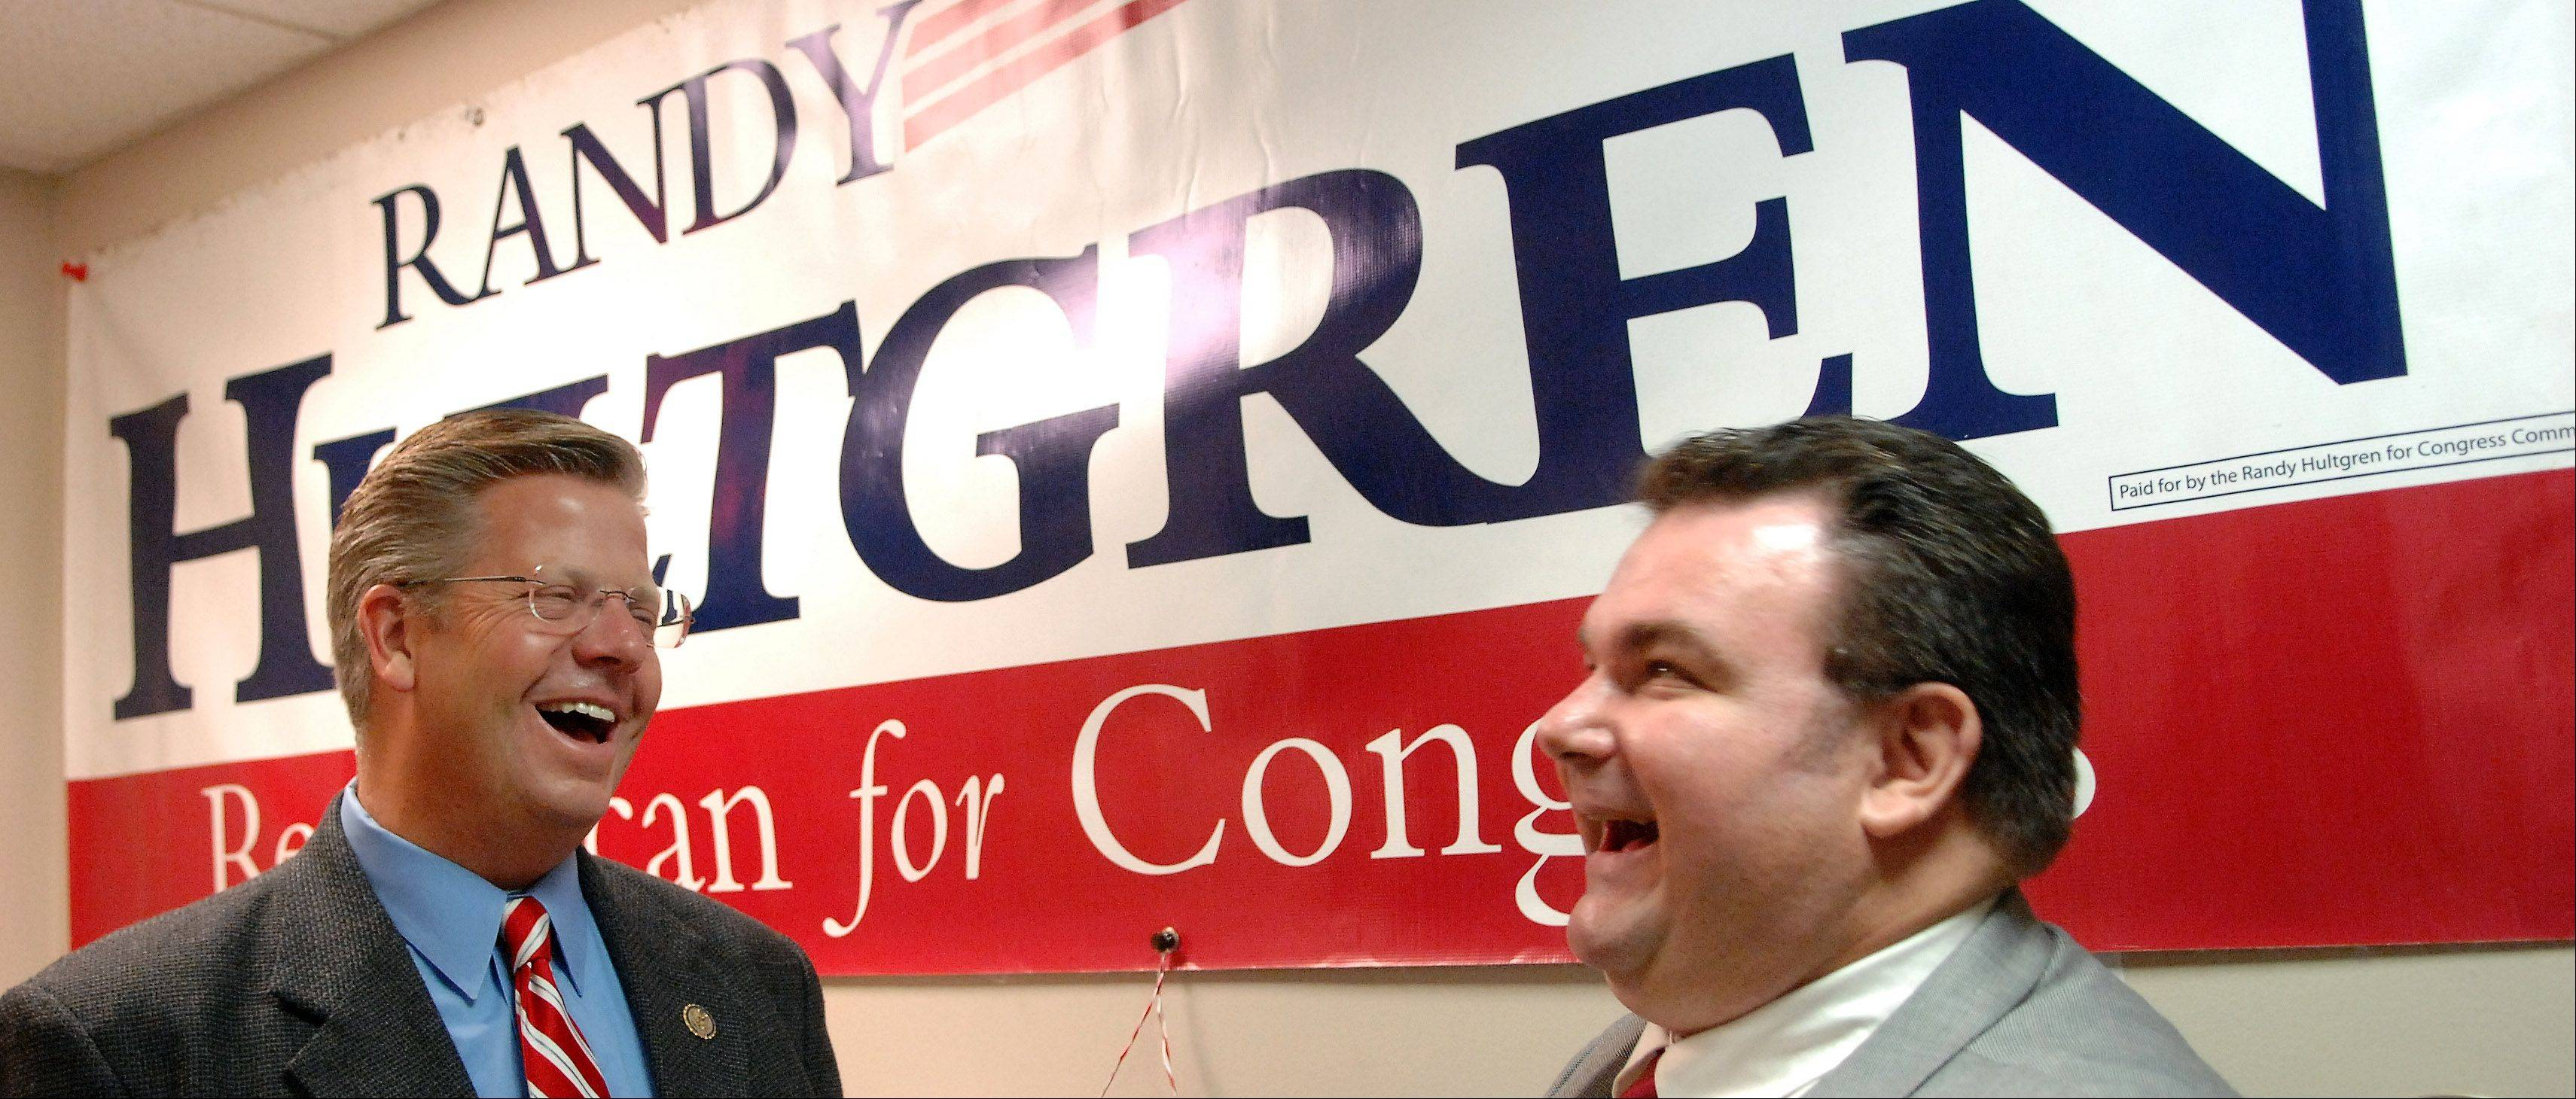 State Rep. Randy Hultgren talks with supporter John O'Neill of McHenry at his campaign headquarters in St. Charles.